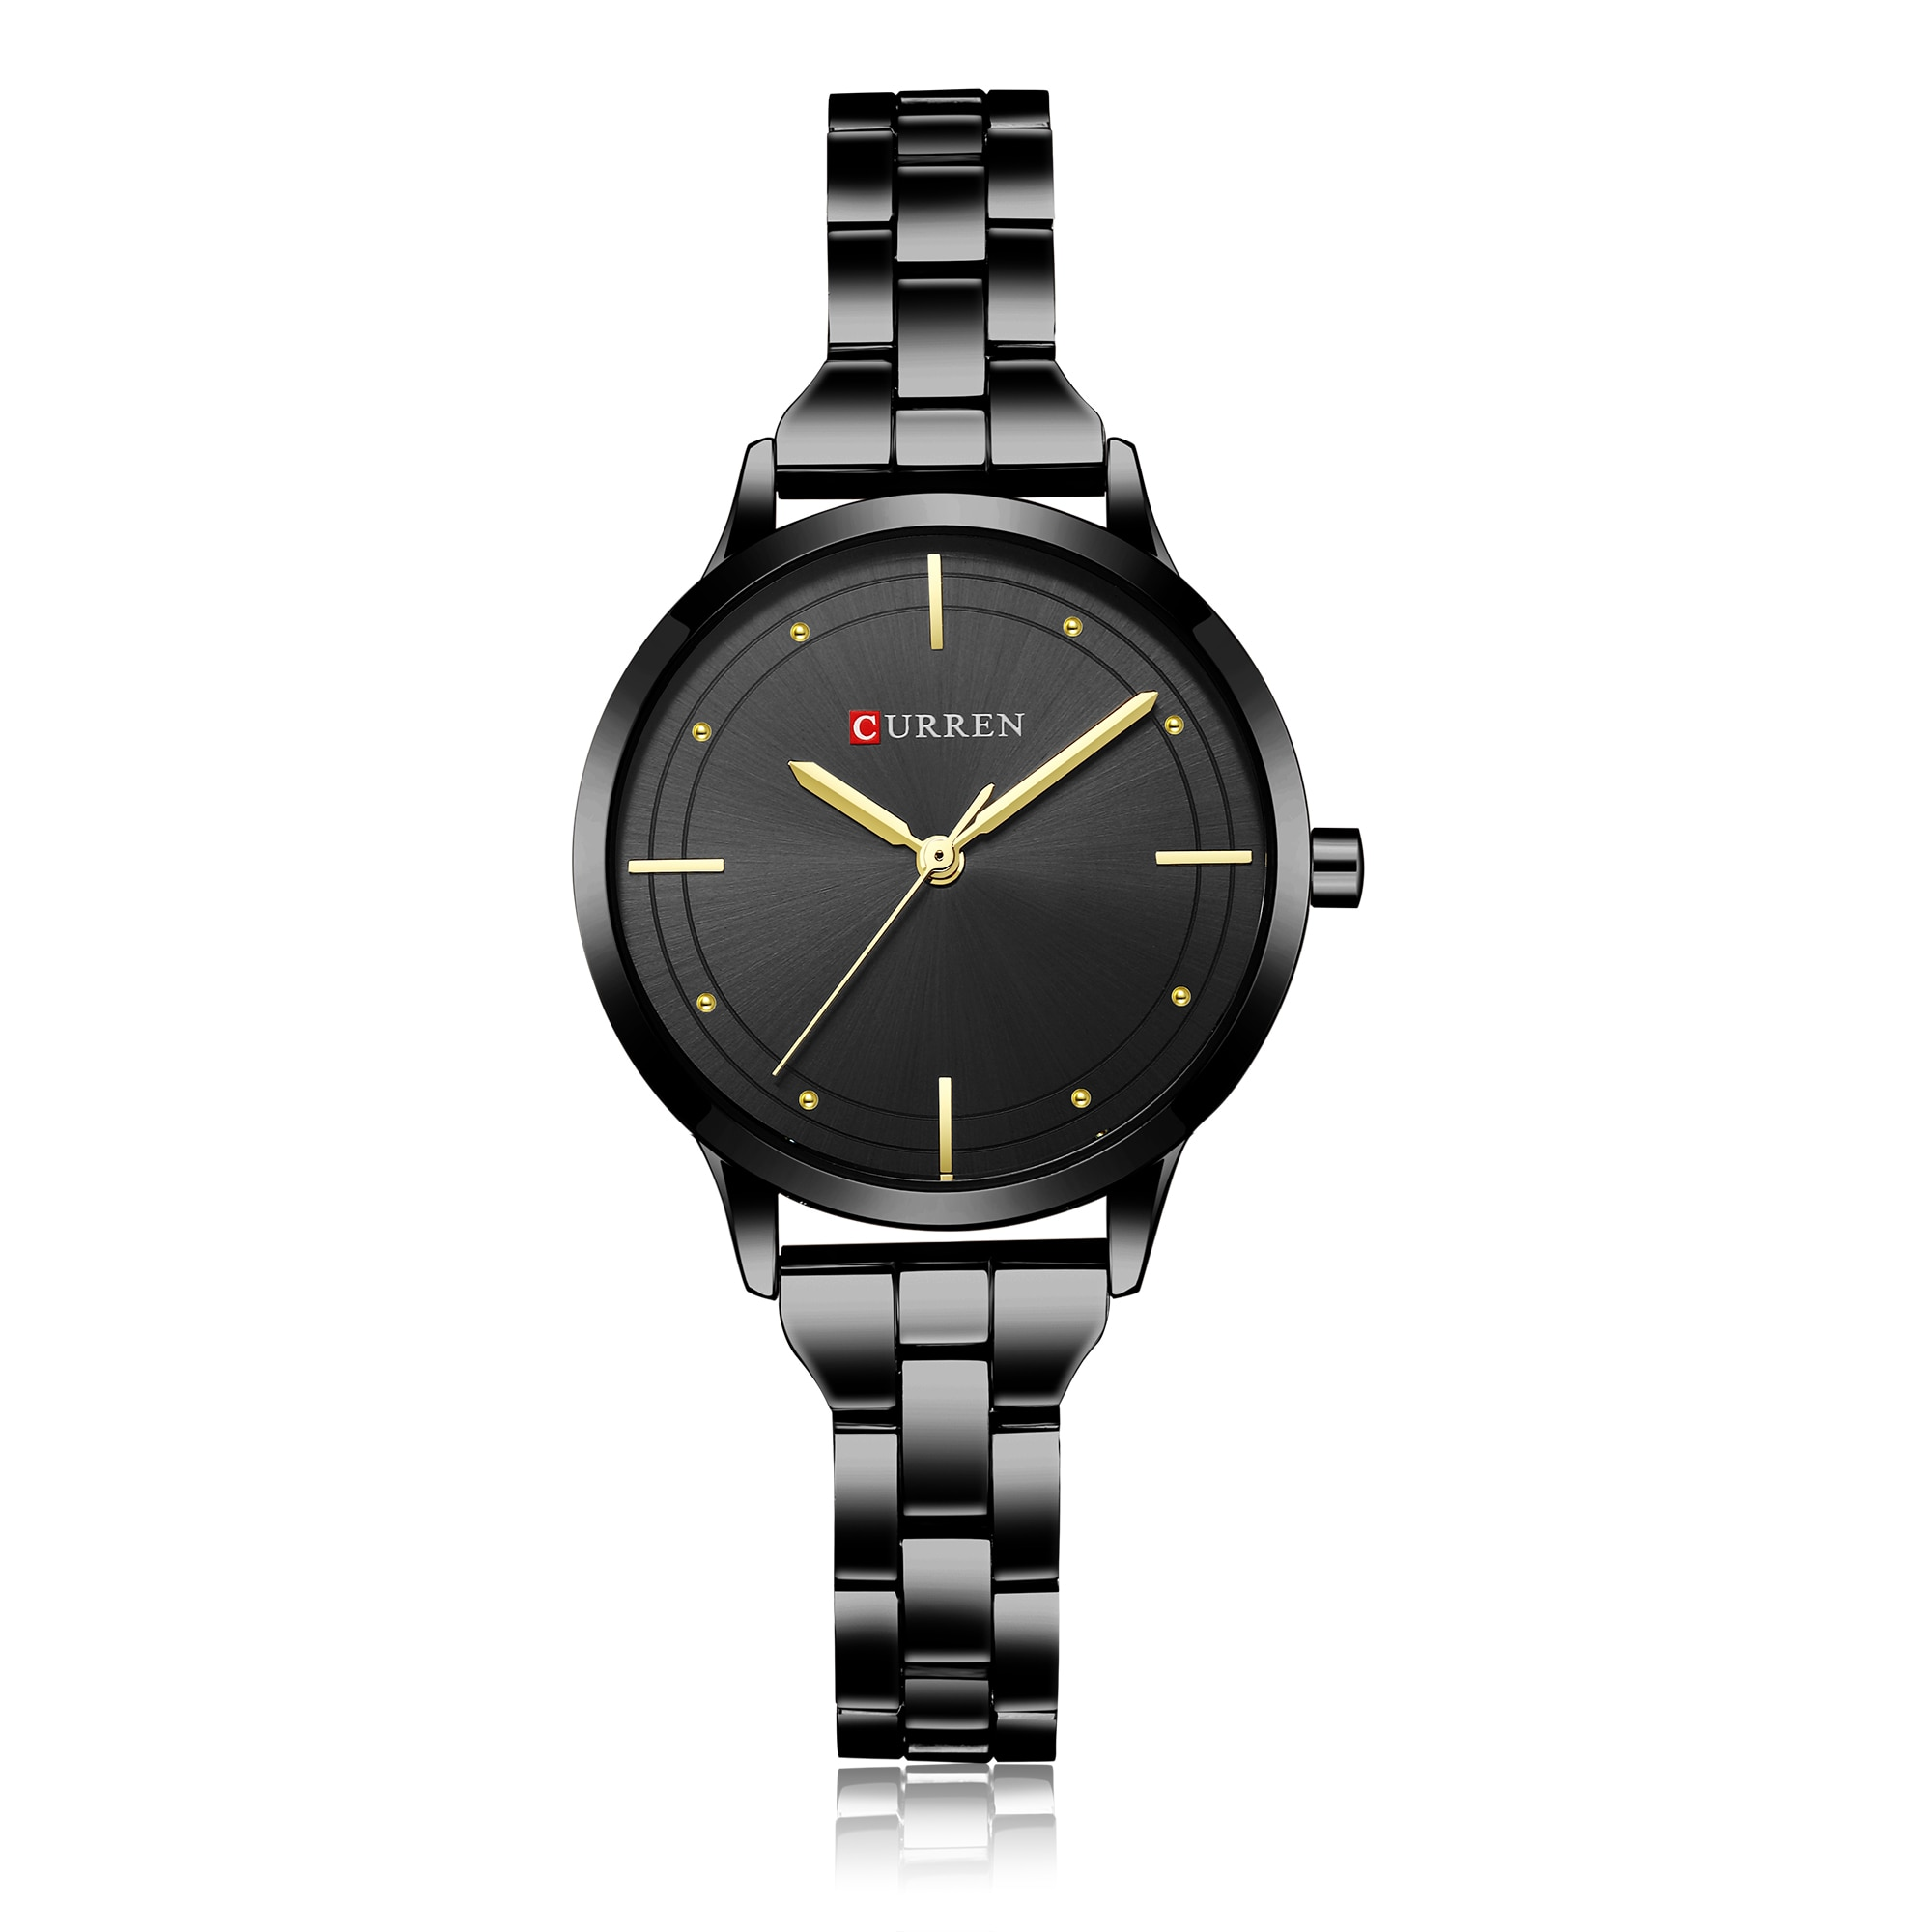 CURREN Casual Female Watch New Arrival Hot Sale Women Watches Quartz Wristwatches Black Stainless Steel Waterproof Reloj Mujer enlarge